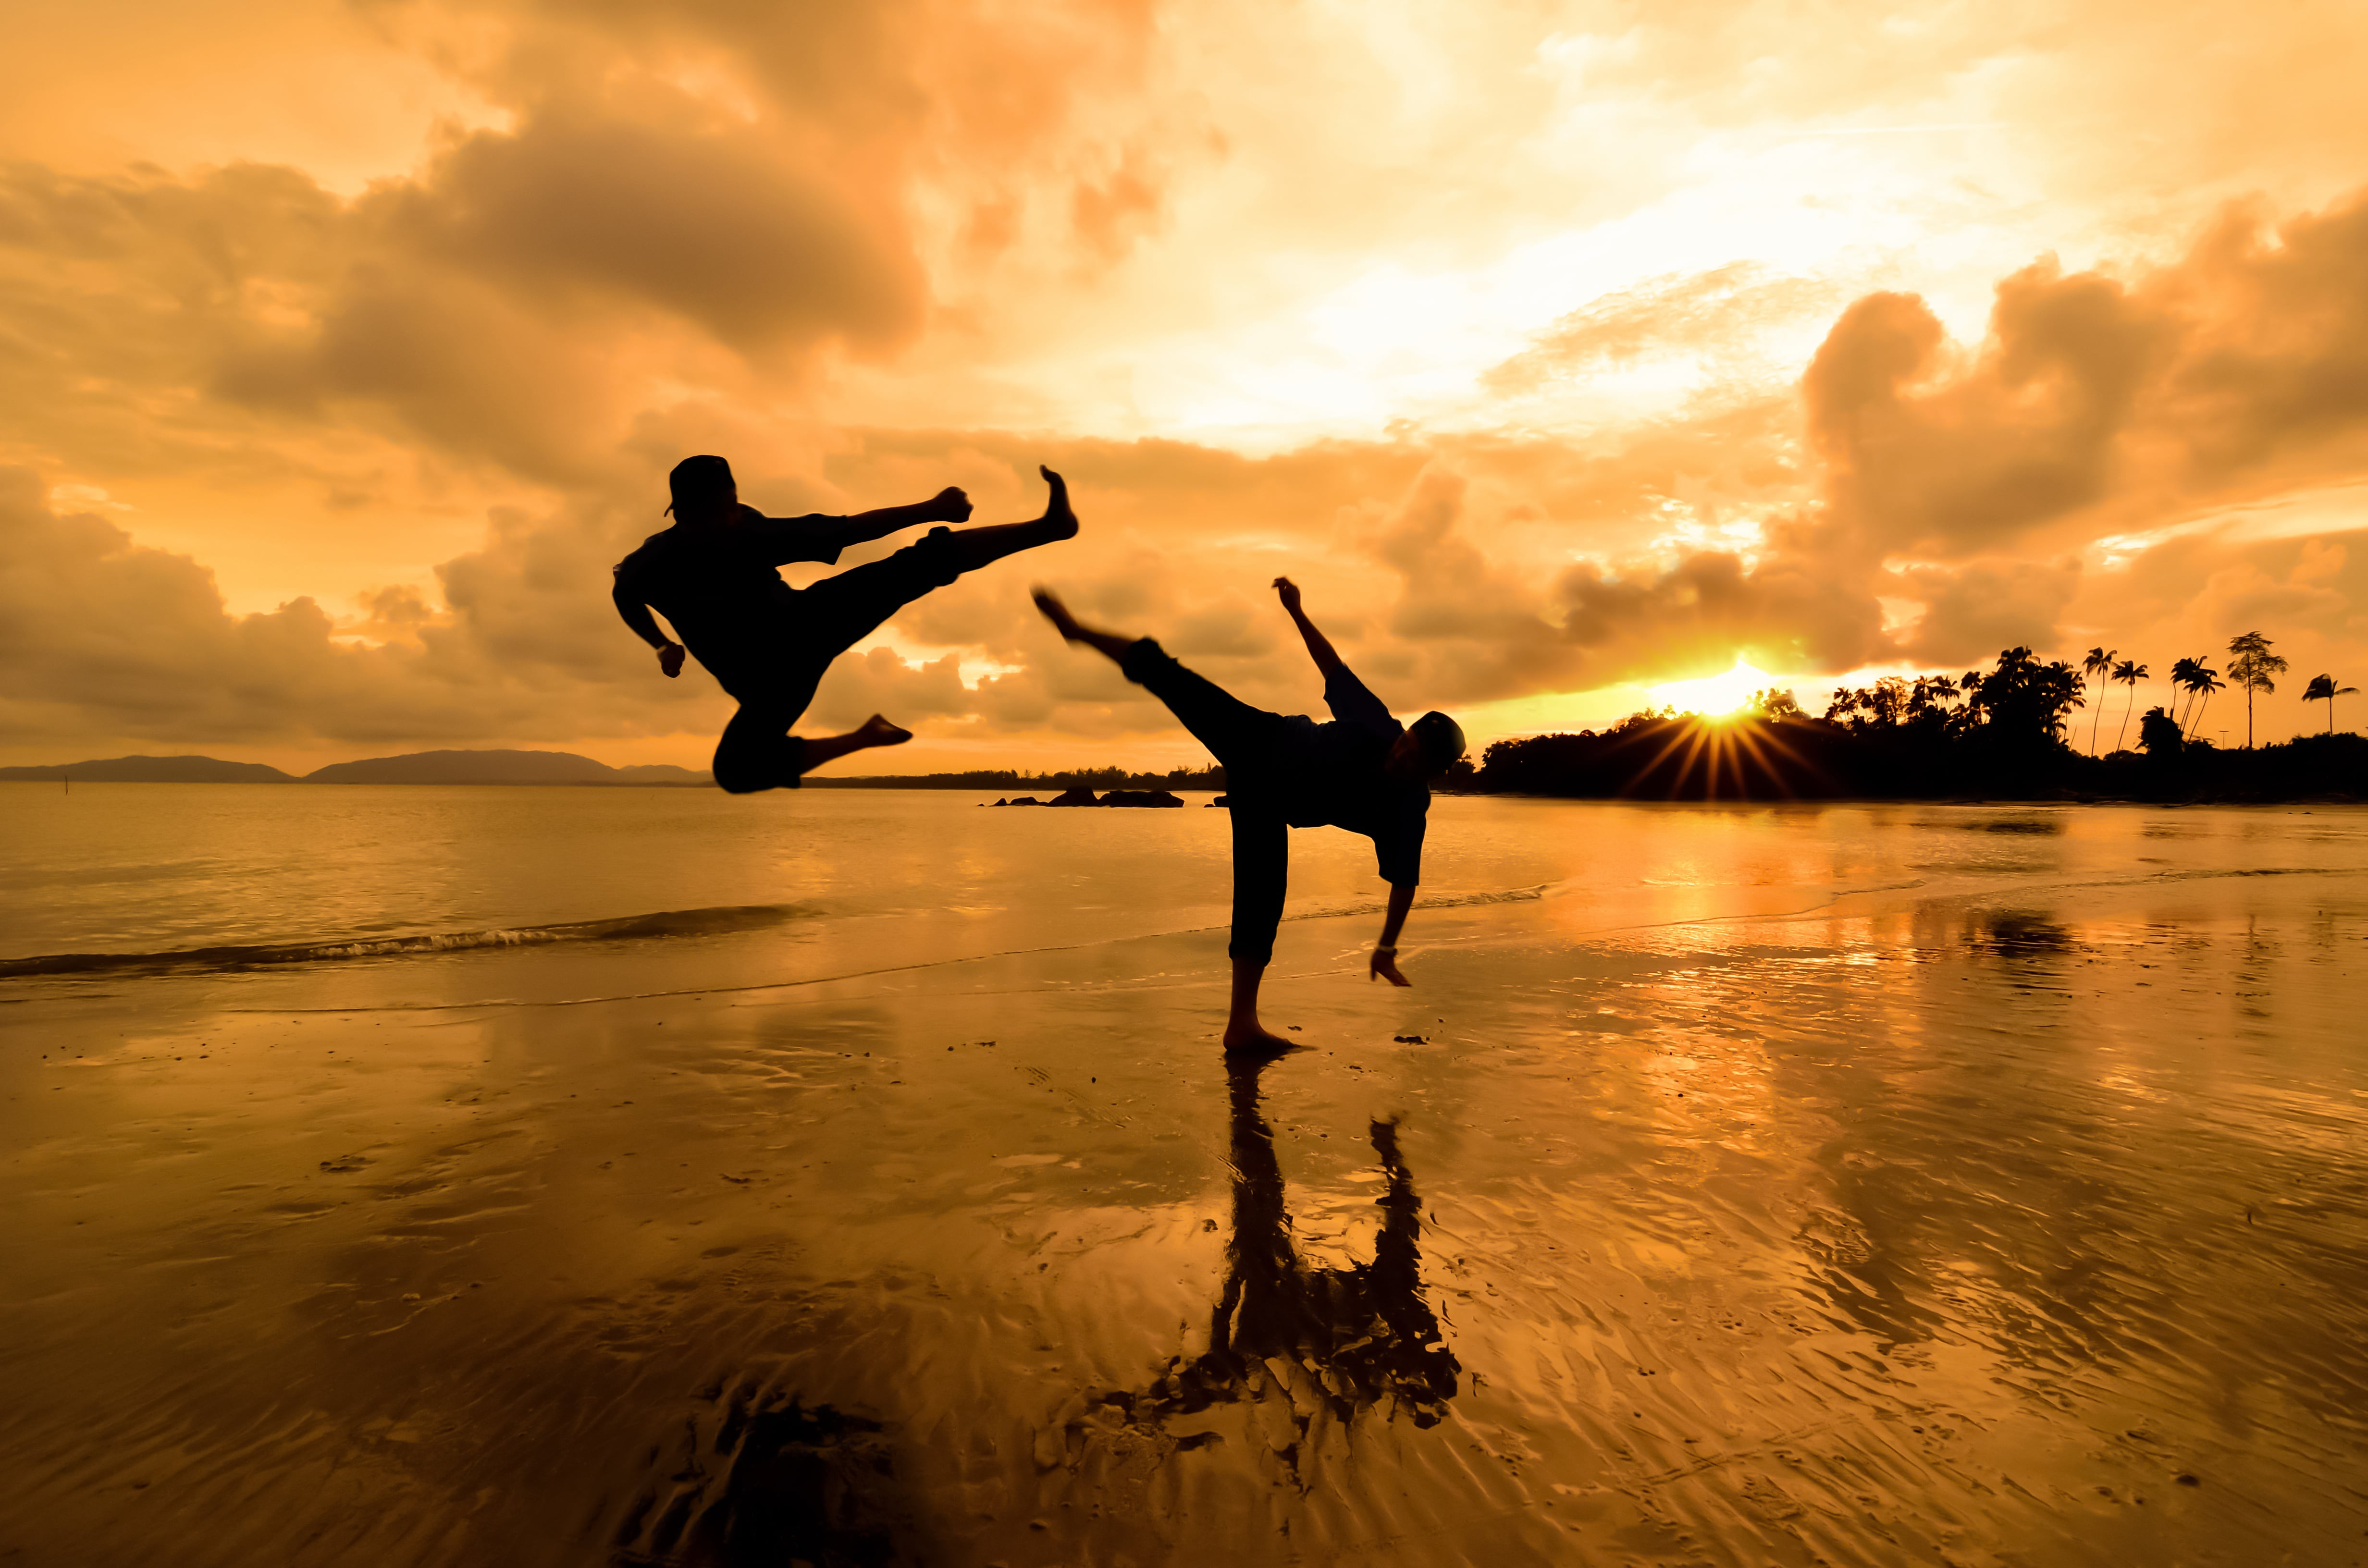 Silhouette of two people performing martial arts